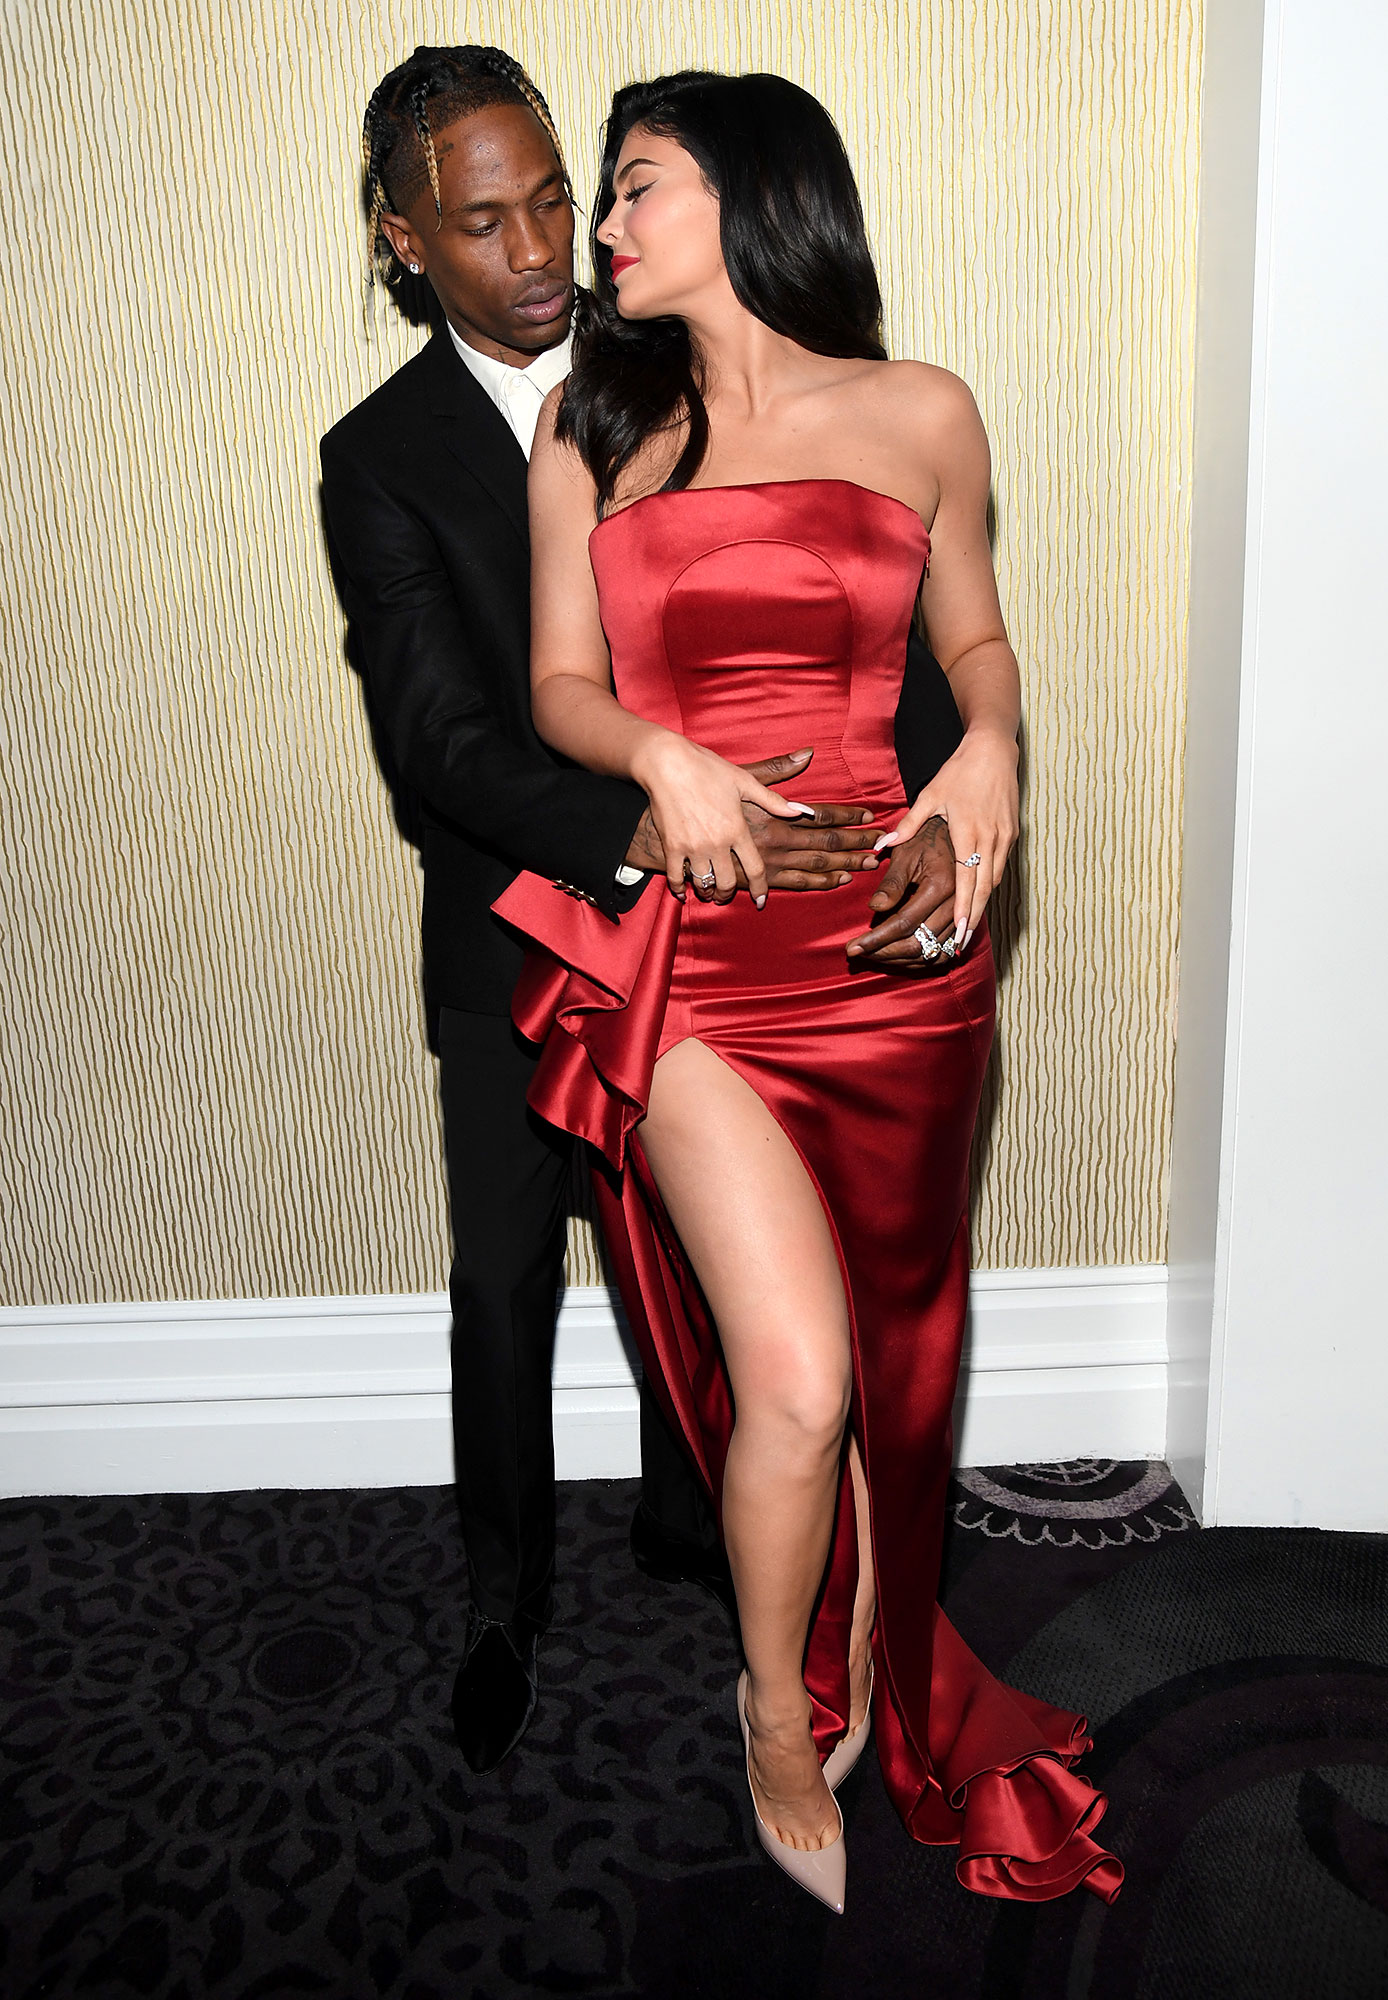 """Kylie and Travis Sweetest Quotes - Scott labeled himself as the """"Husband of the goddess K """" on Instagram while role playing in a suit of armor on April 20, 2019. """"Oh lord Webster !!"""" she replied to Scott (née Jacques Berman Webster II), """"Protect my realm."""""""